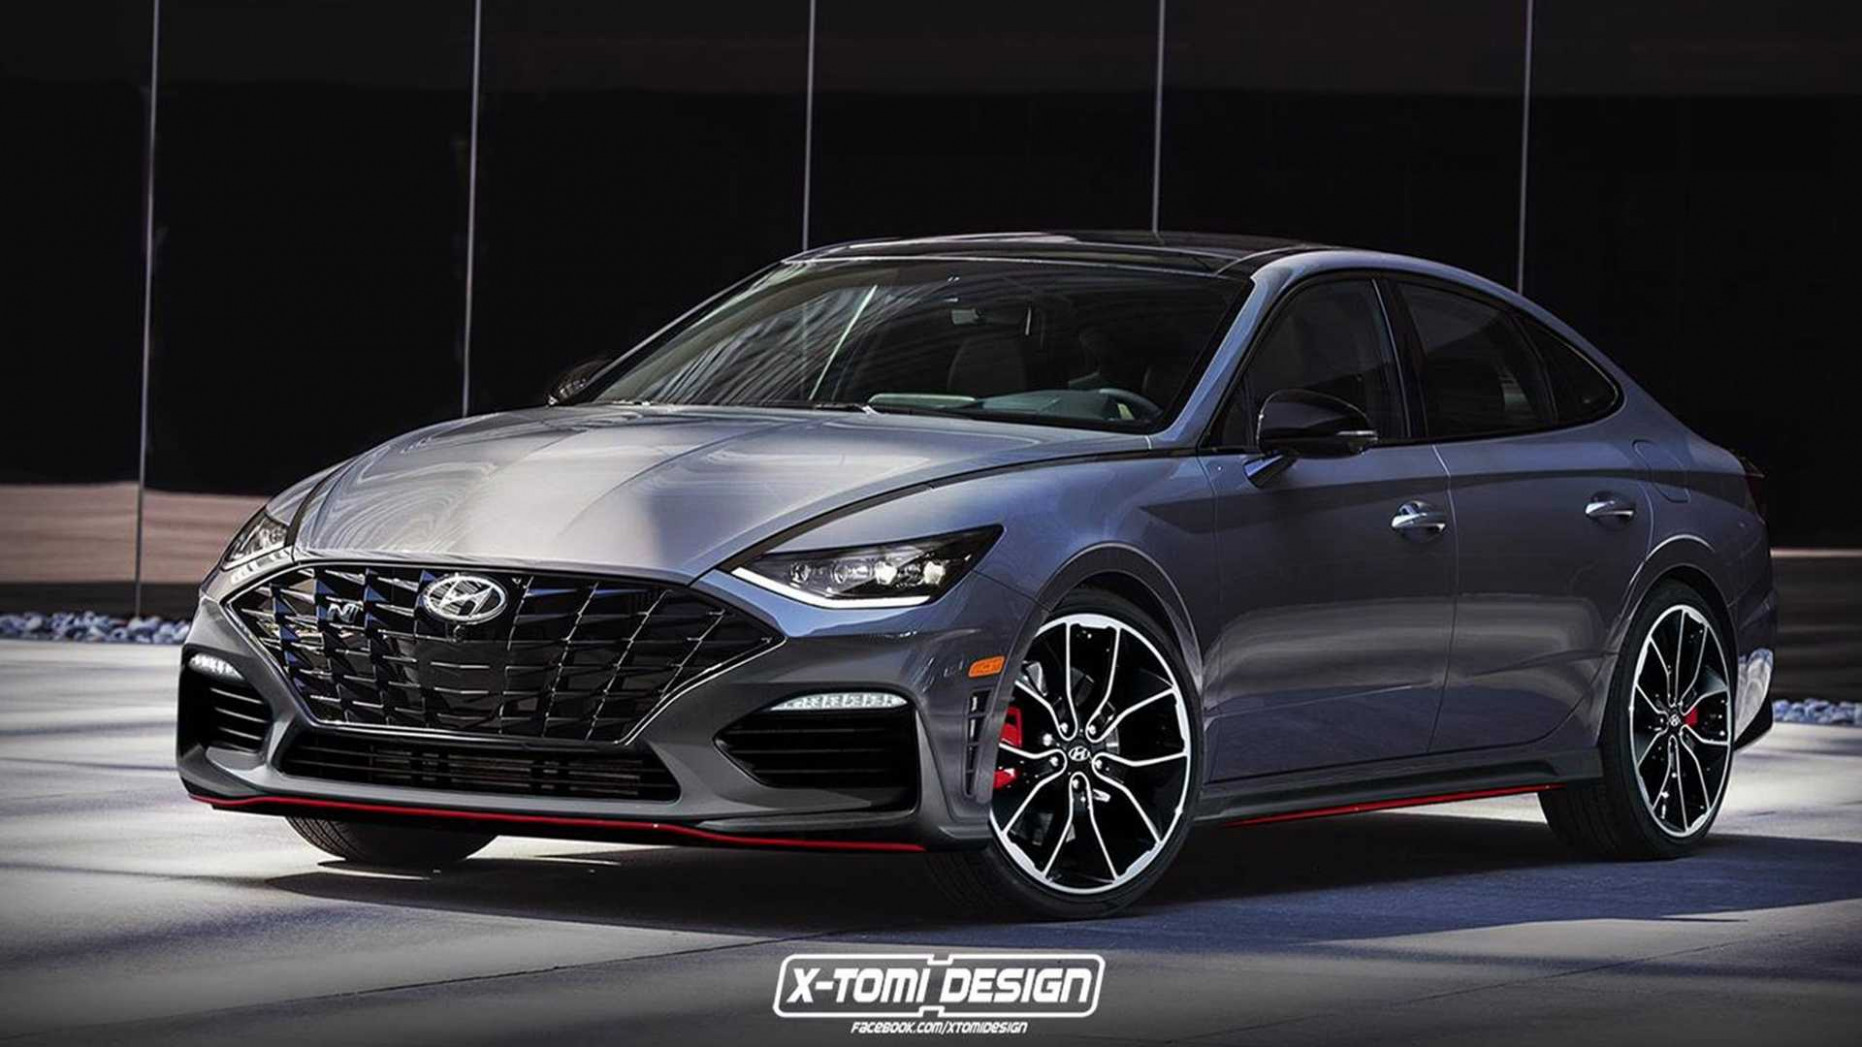 New Model and Performance When Is The 2022 Hyundai Sonata Coming Out